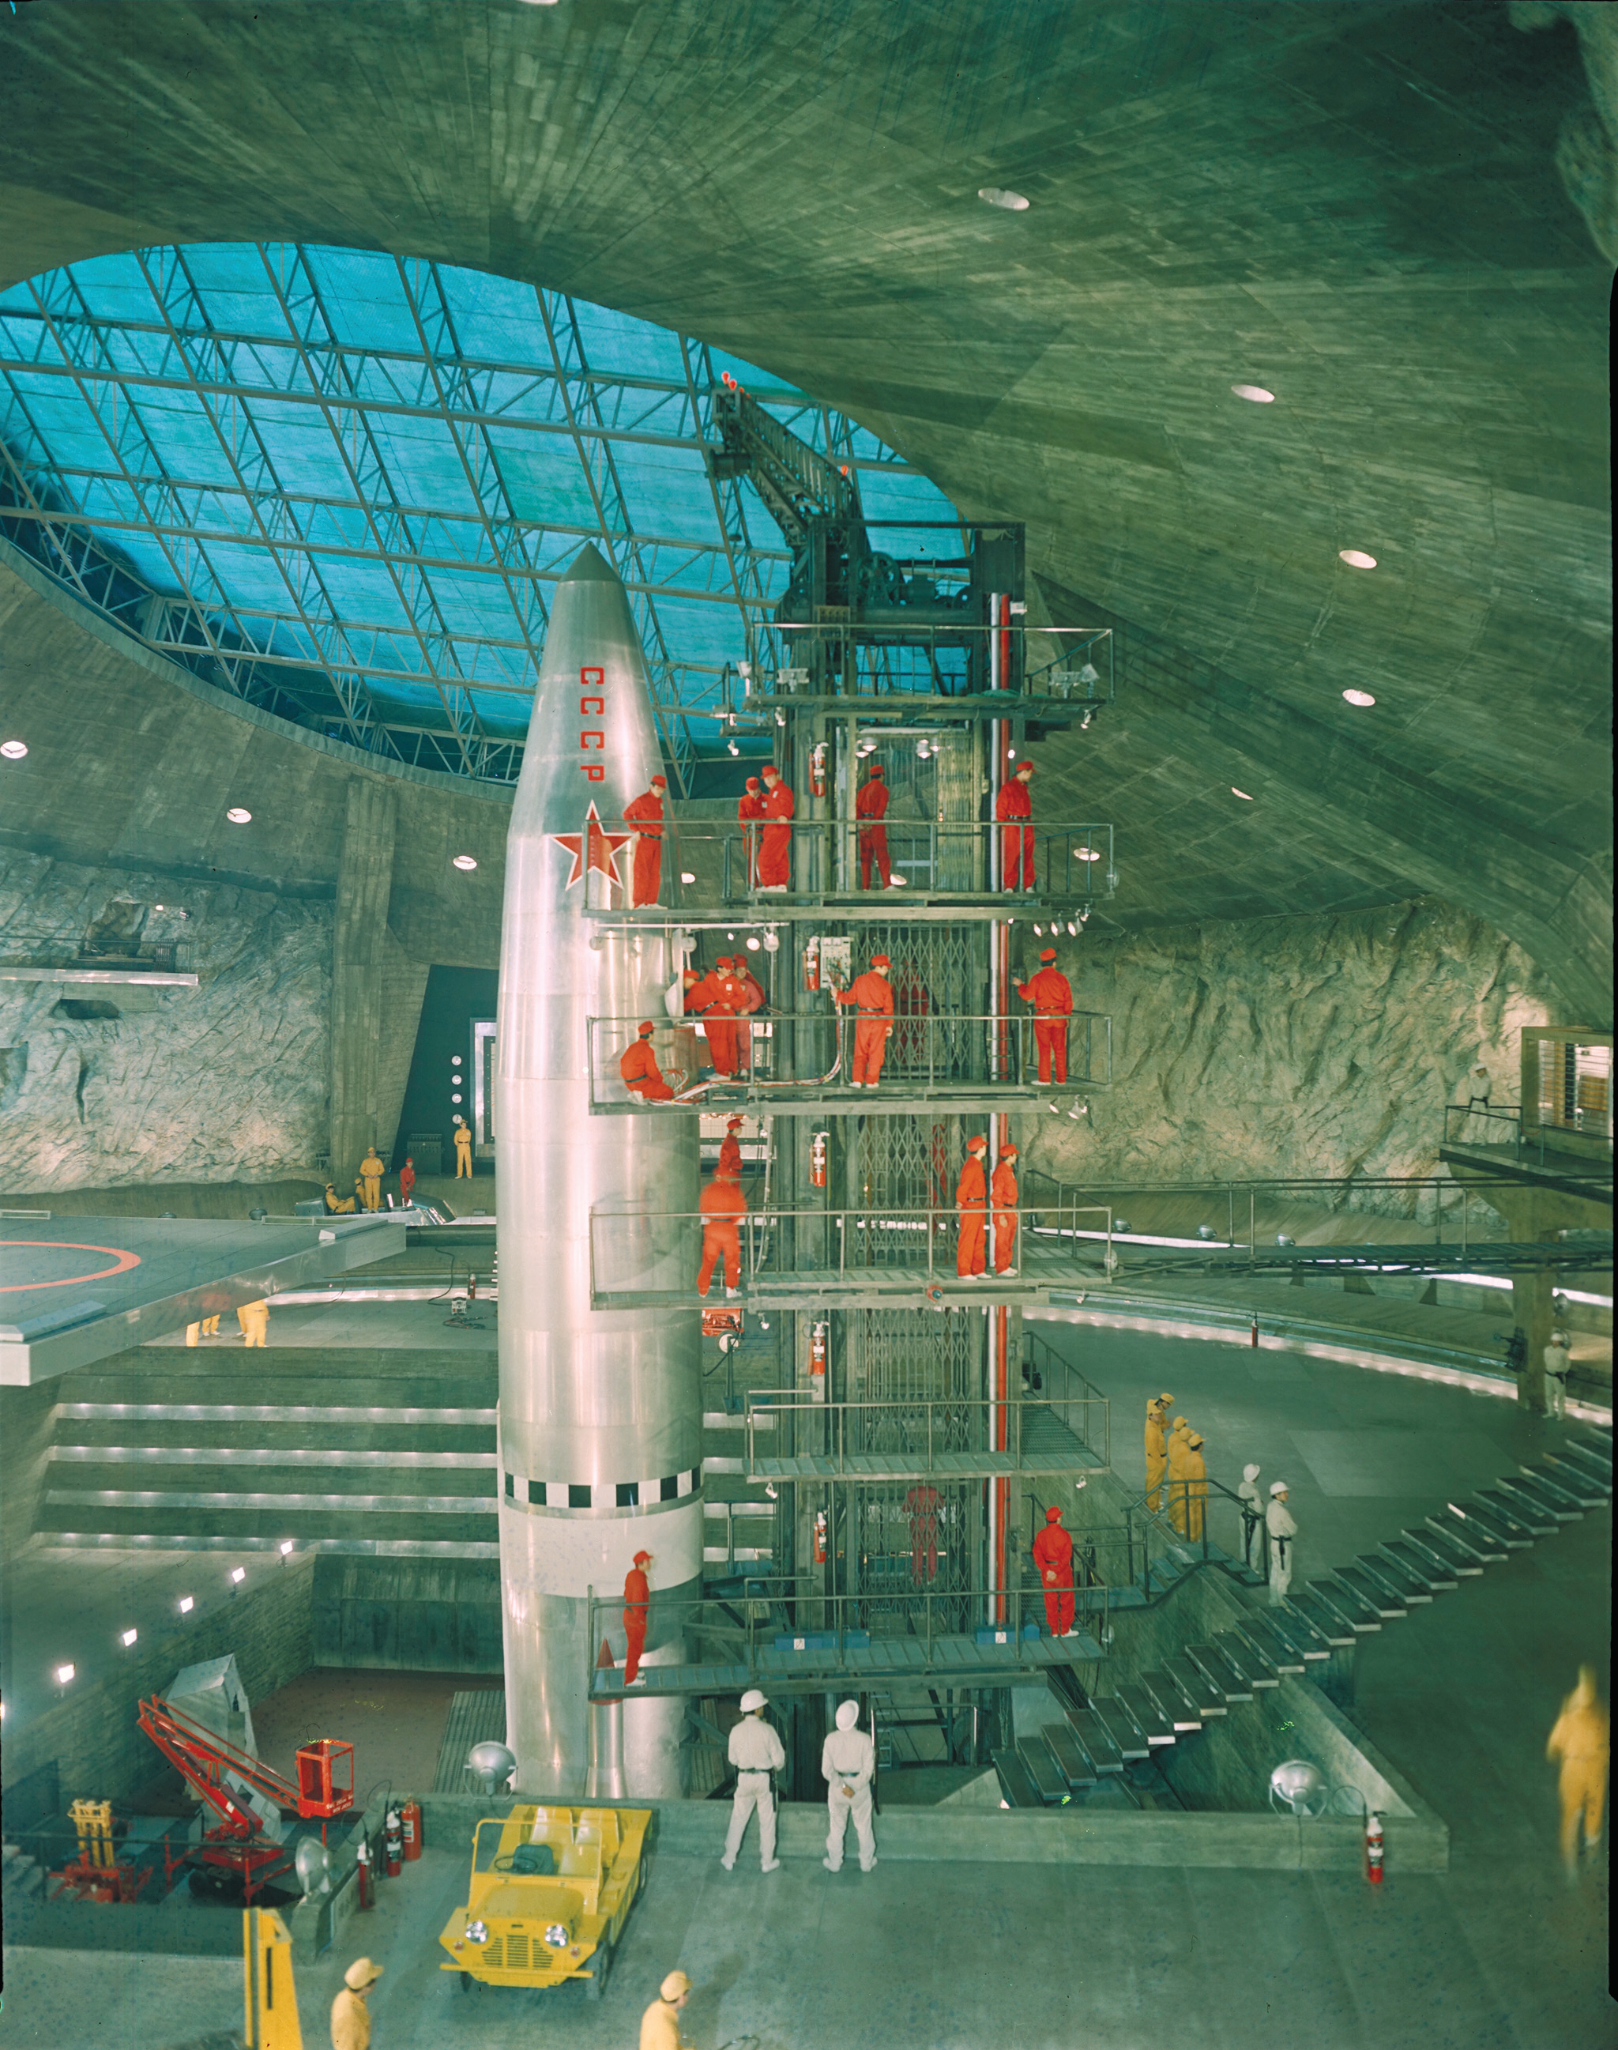 Left and above: Ken Adam's early concept art for the volcano set on You Only Live Twice. Inside the Volcano, SPECTRE's crewmen work on the rocket which is being prepared for an attack on a Soviet target